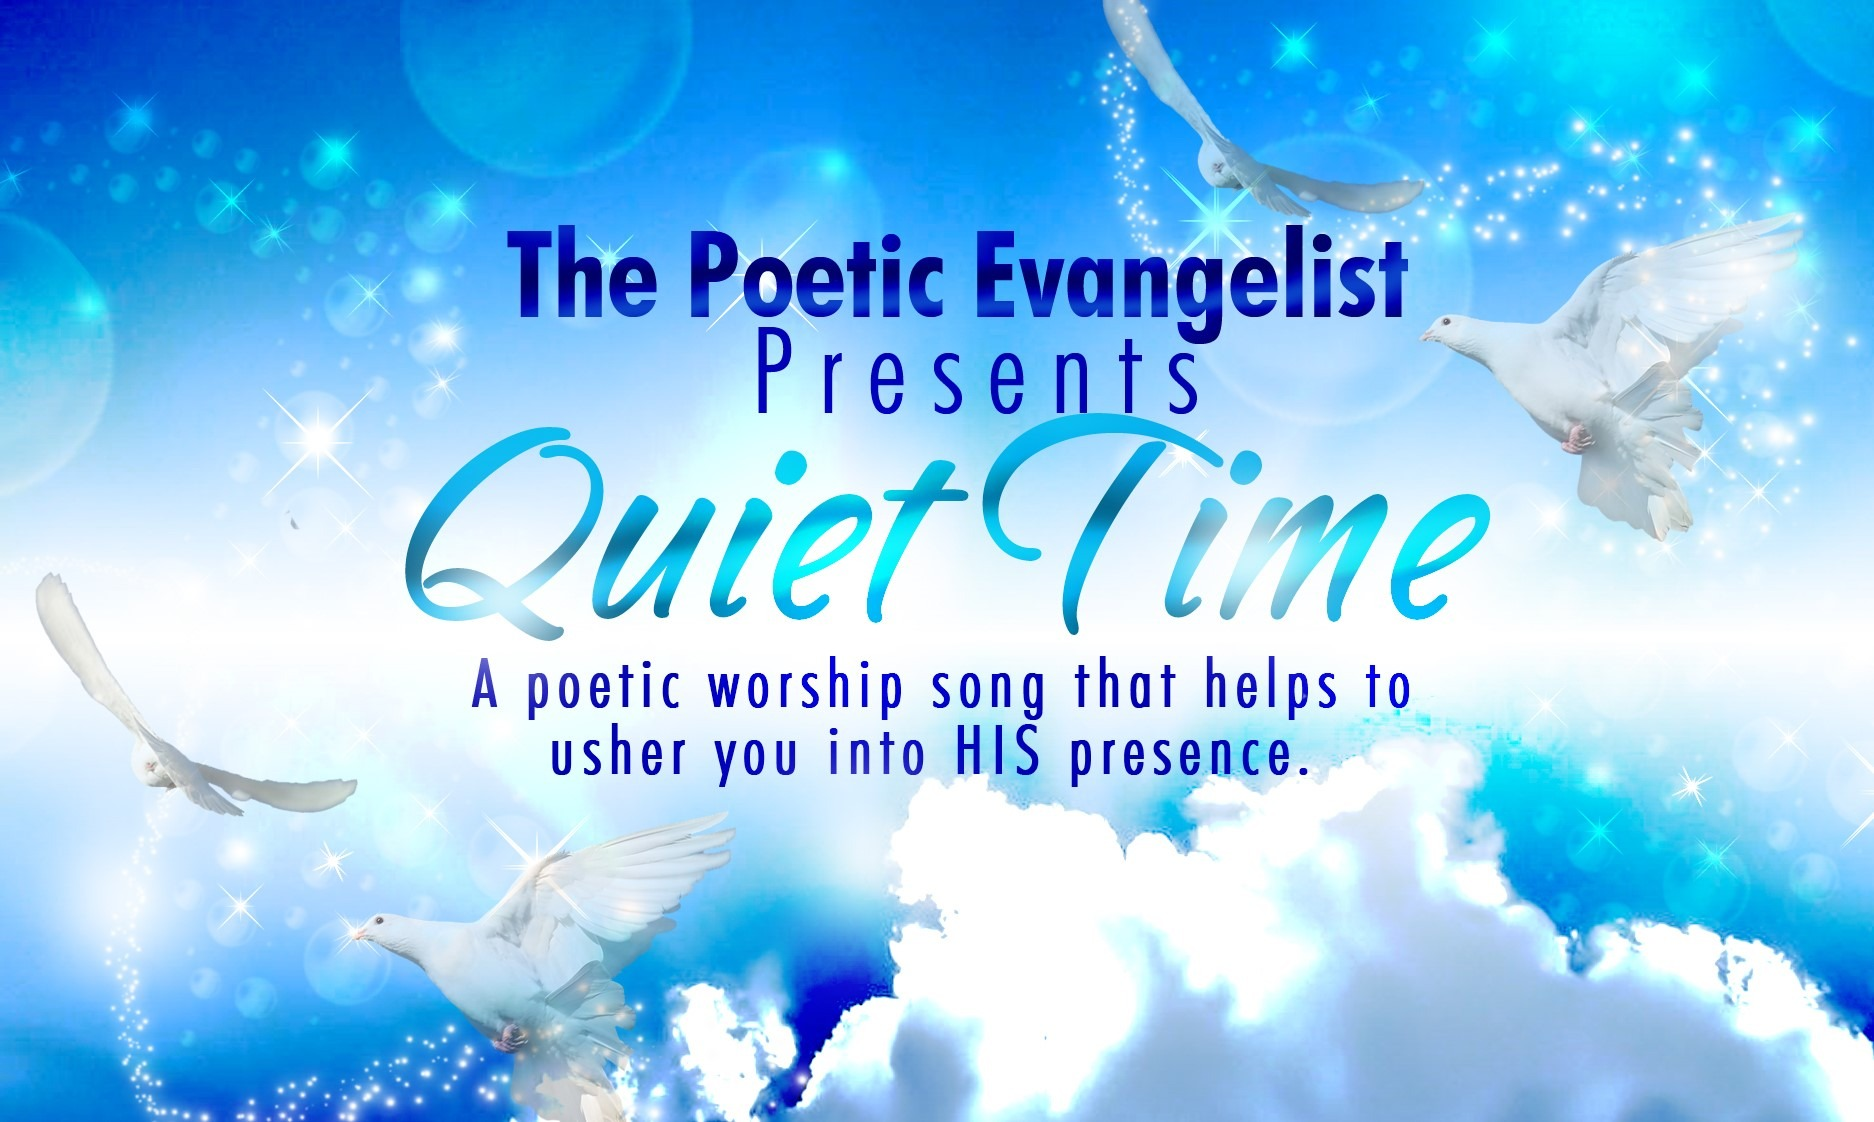 Spoken Word Over Music - Quiet Time